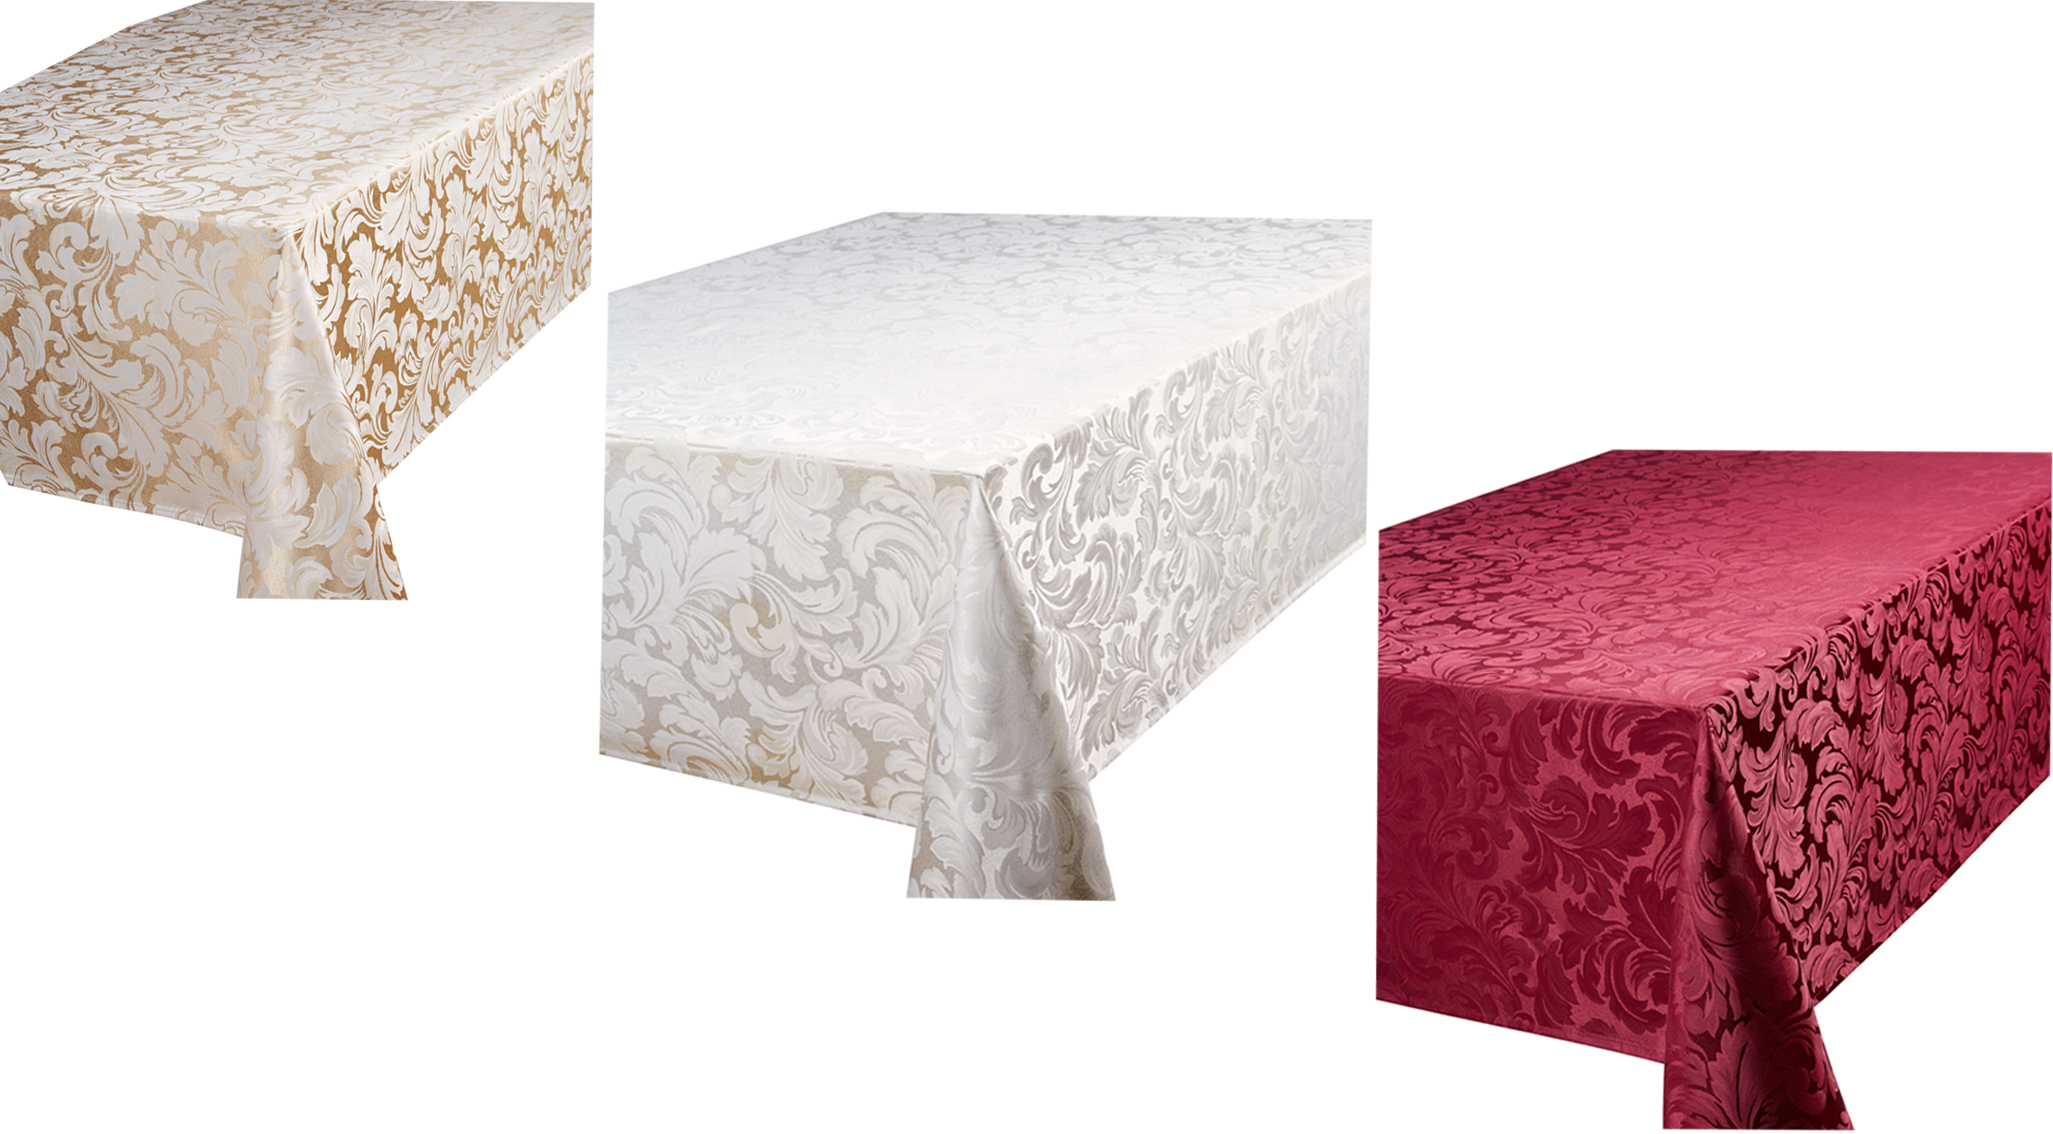 Tablecloths come in a wide range of sizes and shapes to suit a wide variety of tables and draping preferences. Standard tablecloth sizes range from 70 inches by 90 inches to inches round.